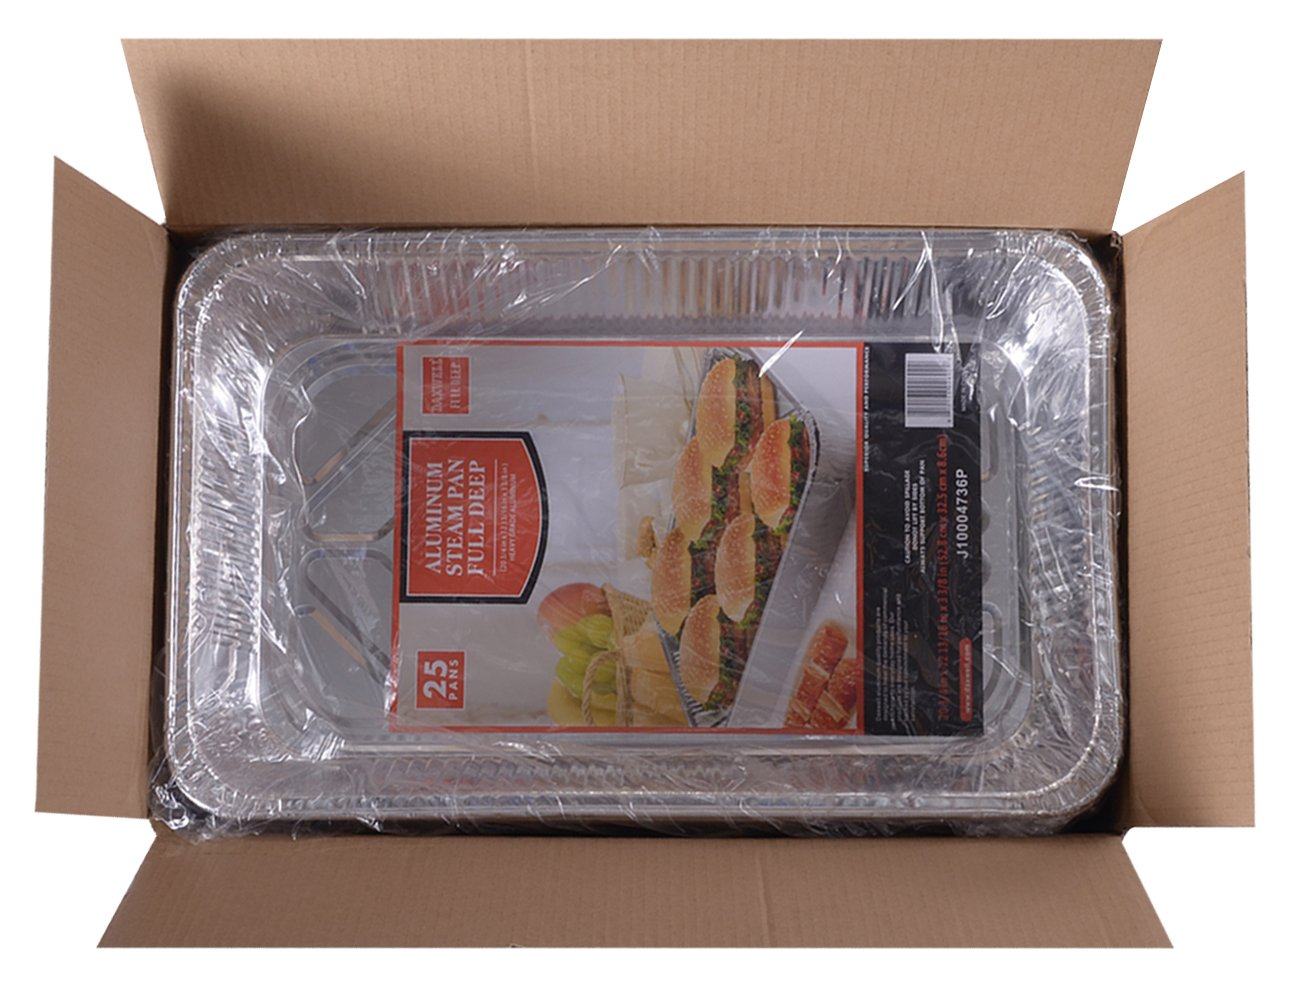 Daxwell Disposable Aluminum Steam Table Pan, Deep, Full Size (2 Packs of 25) by Daxwell (Image #2)